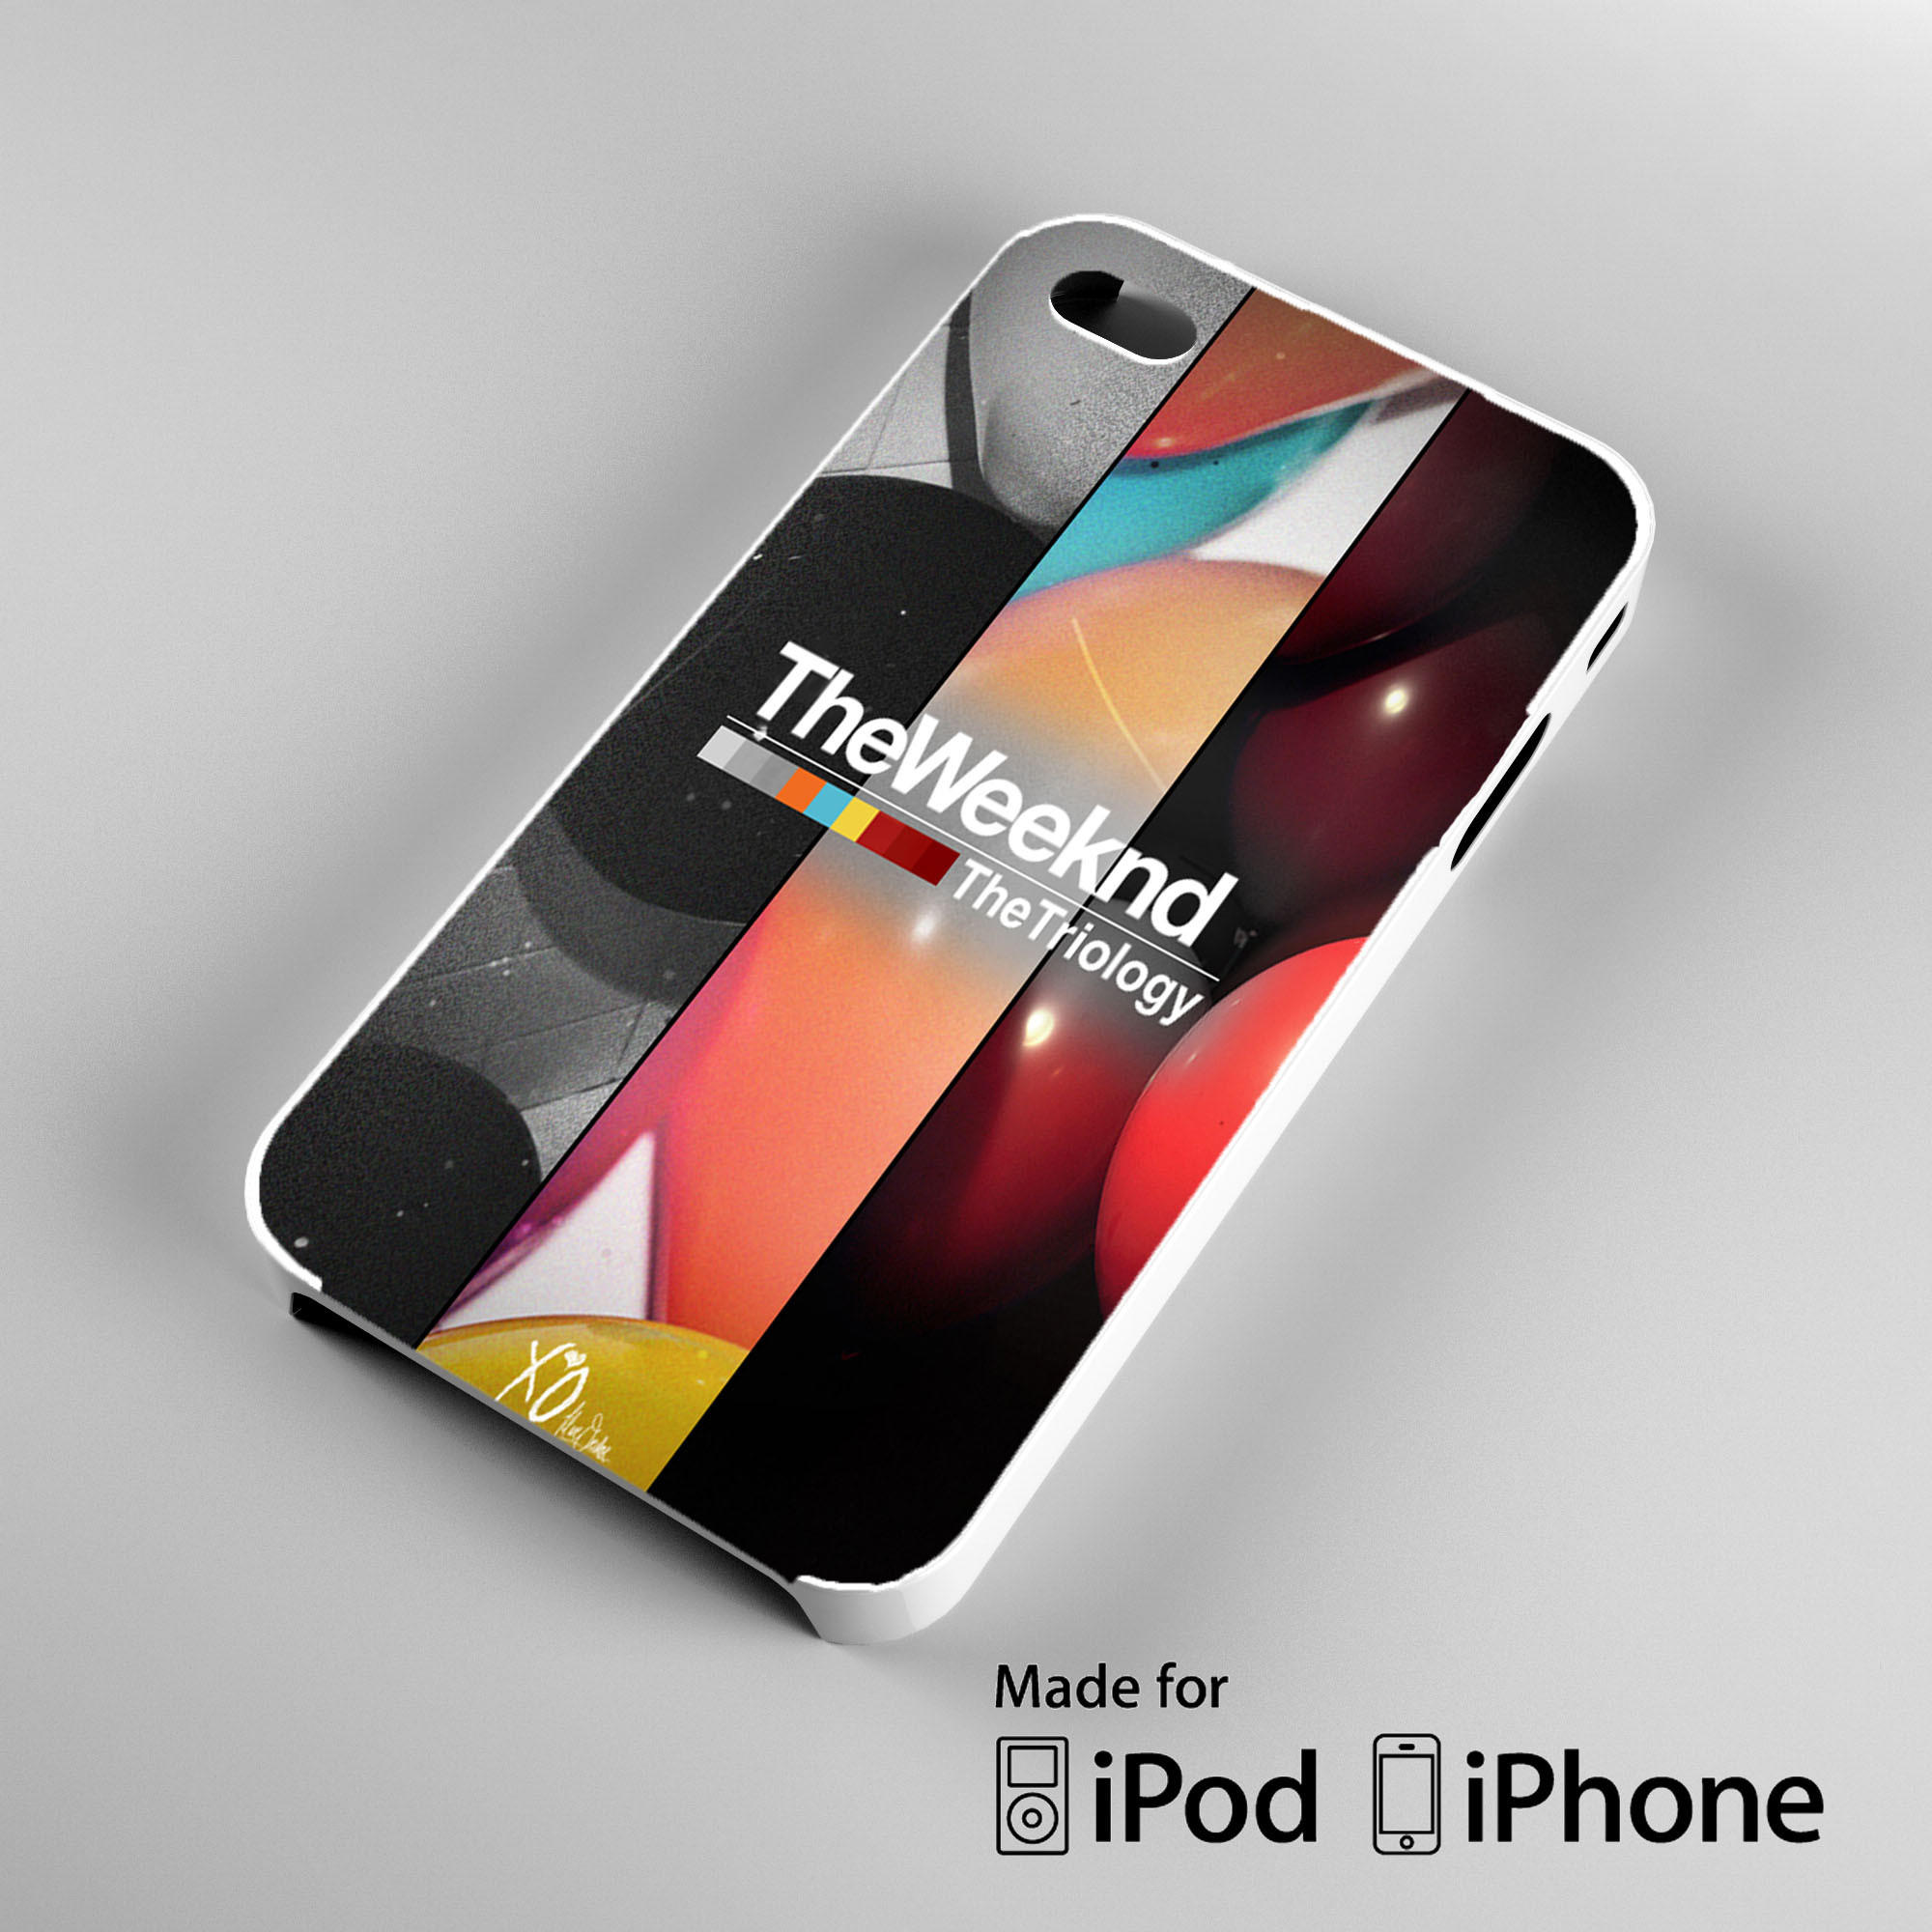 THE WEEKND THE TRILOGY COVER A1646 iPhone from velozcity.com 4c7878fbeb6e